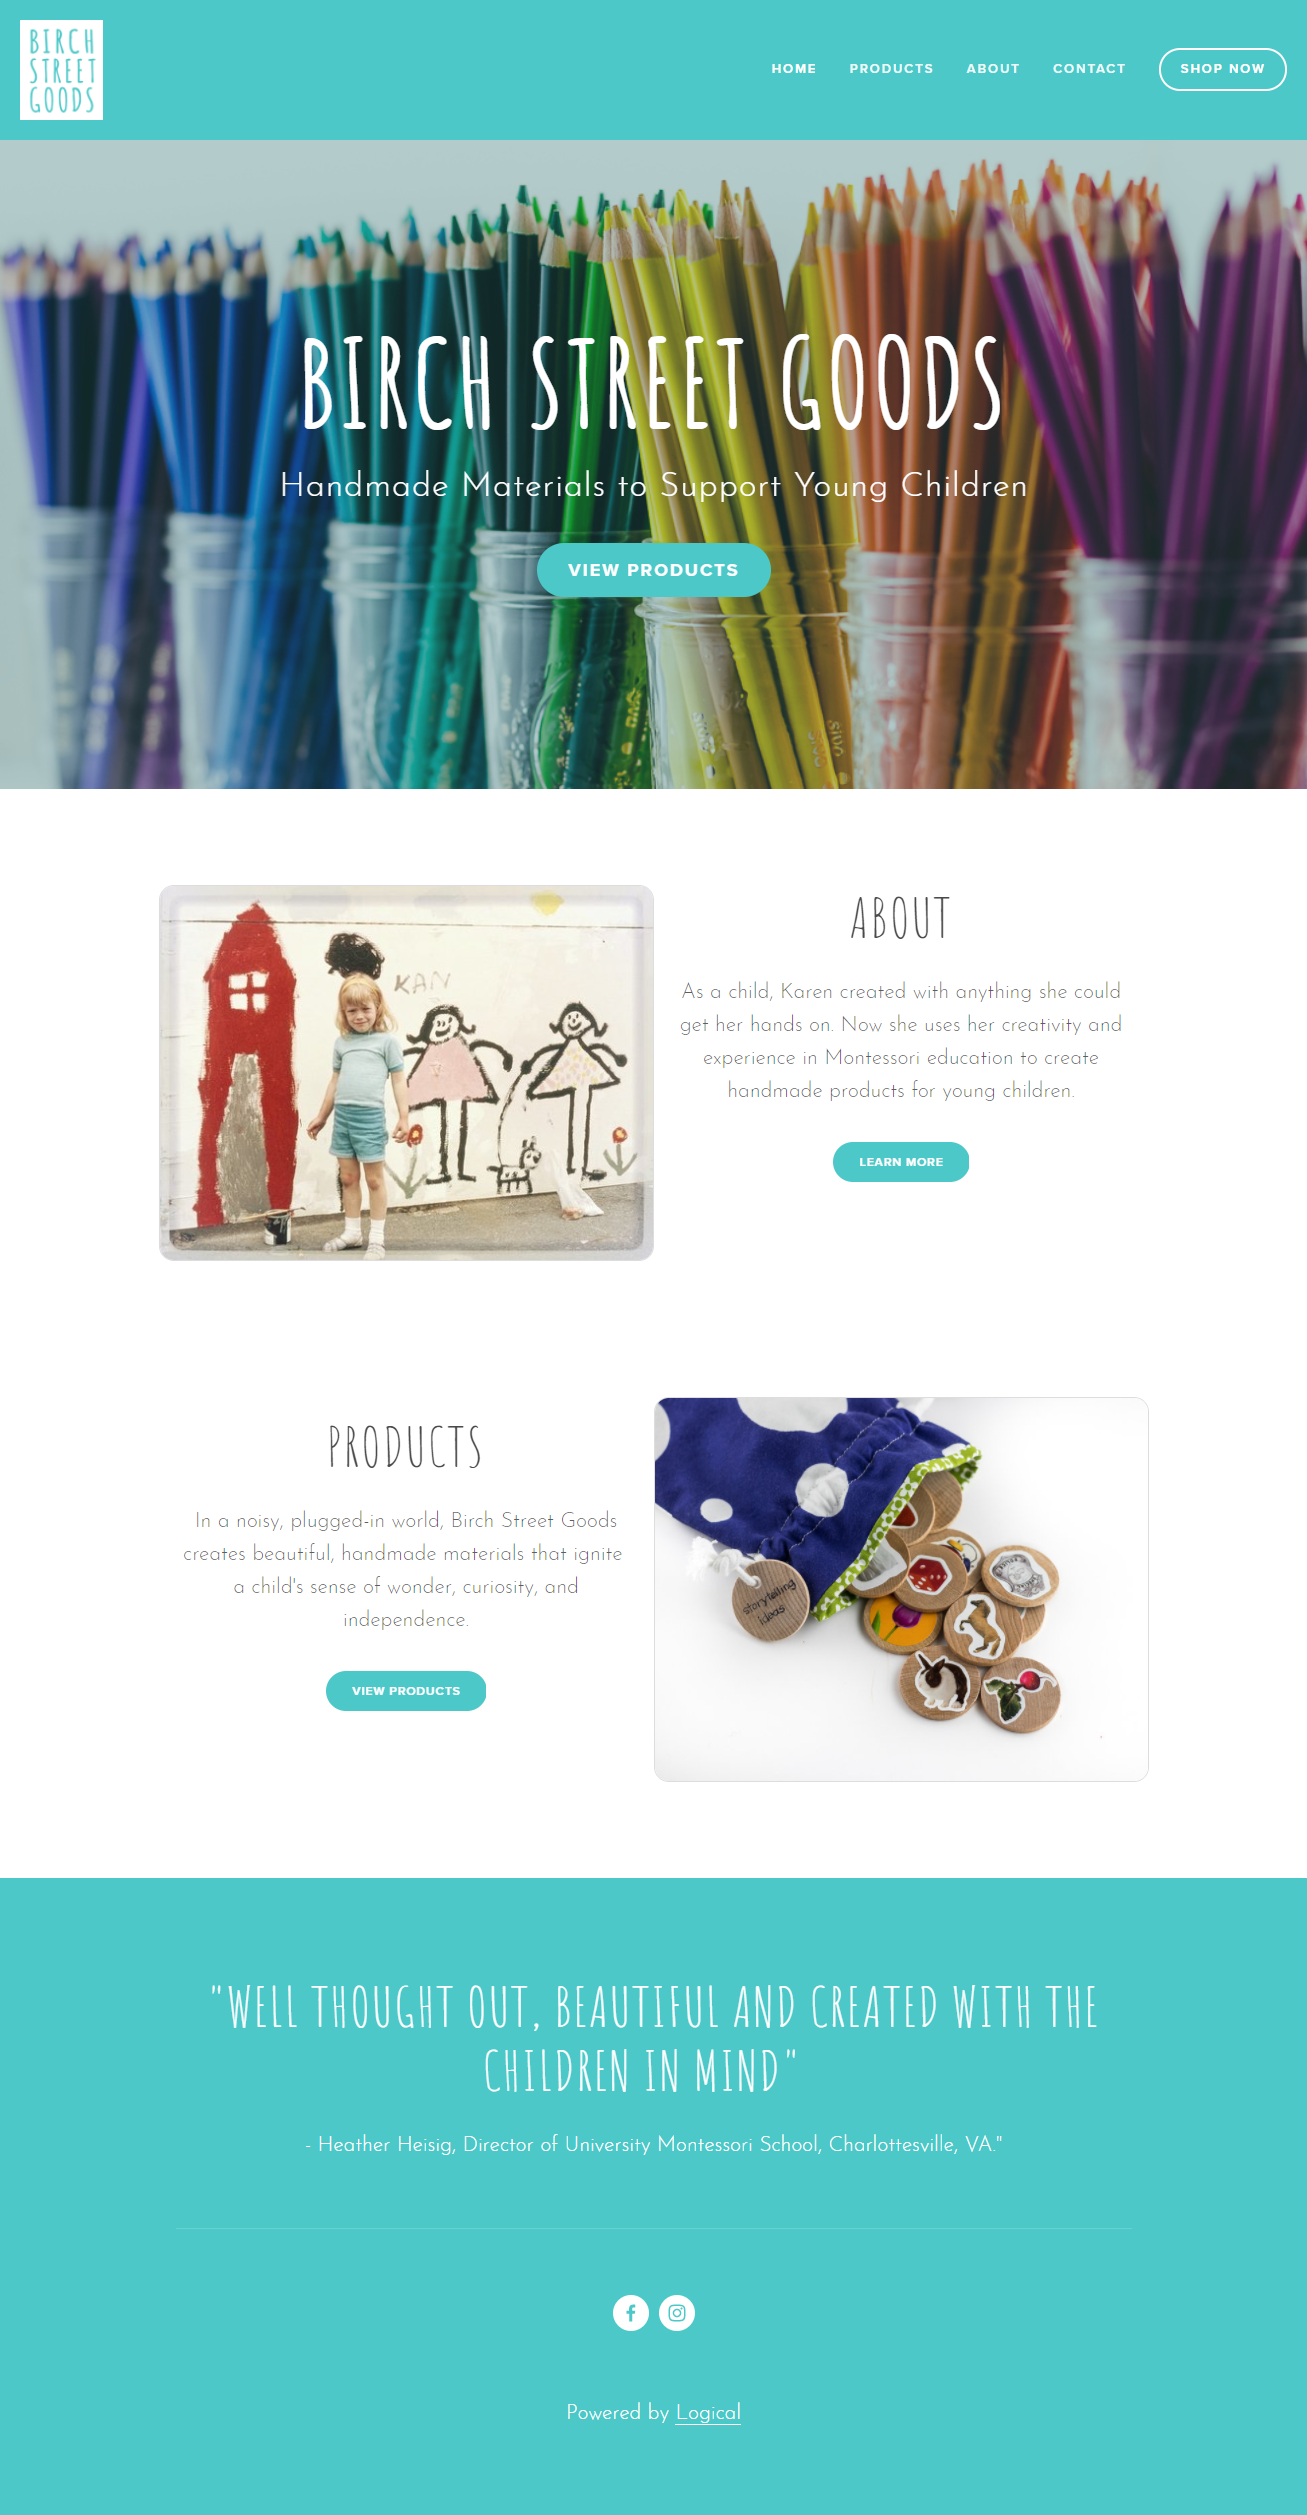 Birch Street Goods - handmade materials for young children